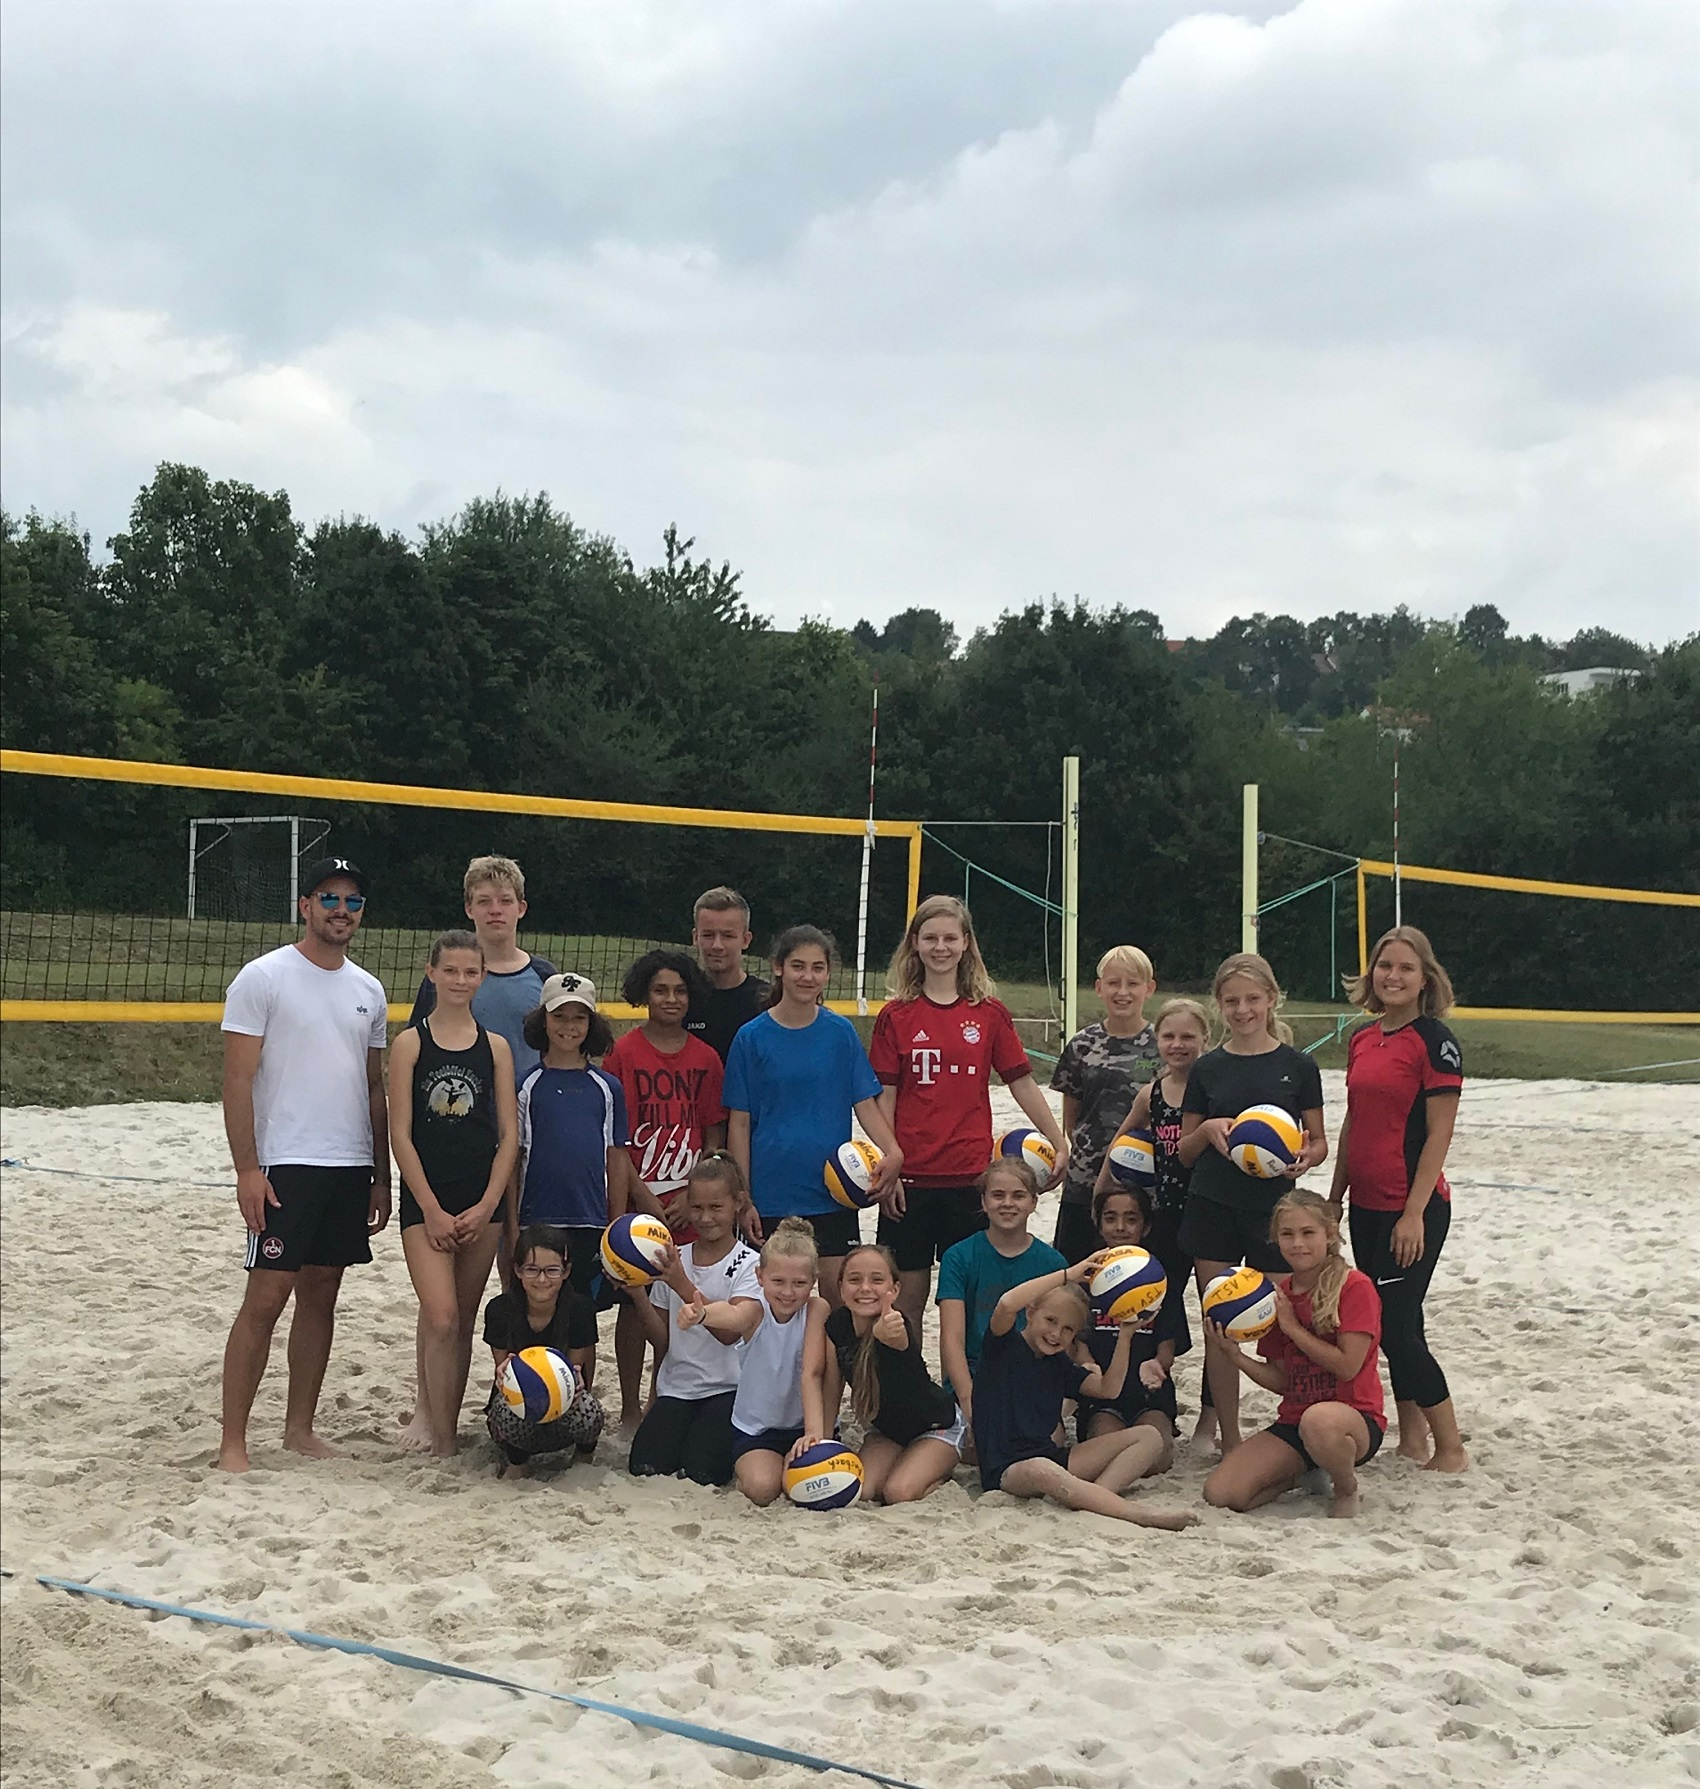 Ferienpass meets Beachvolleyball